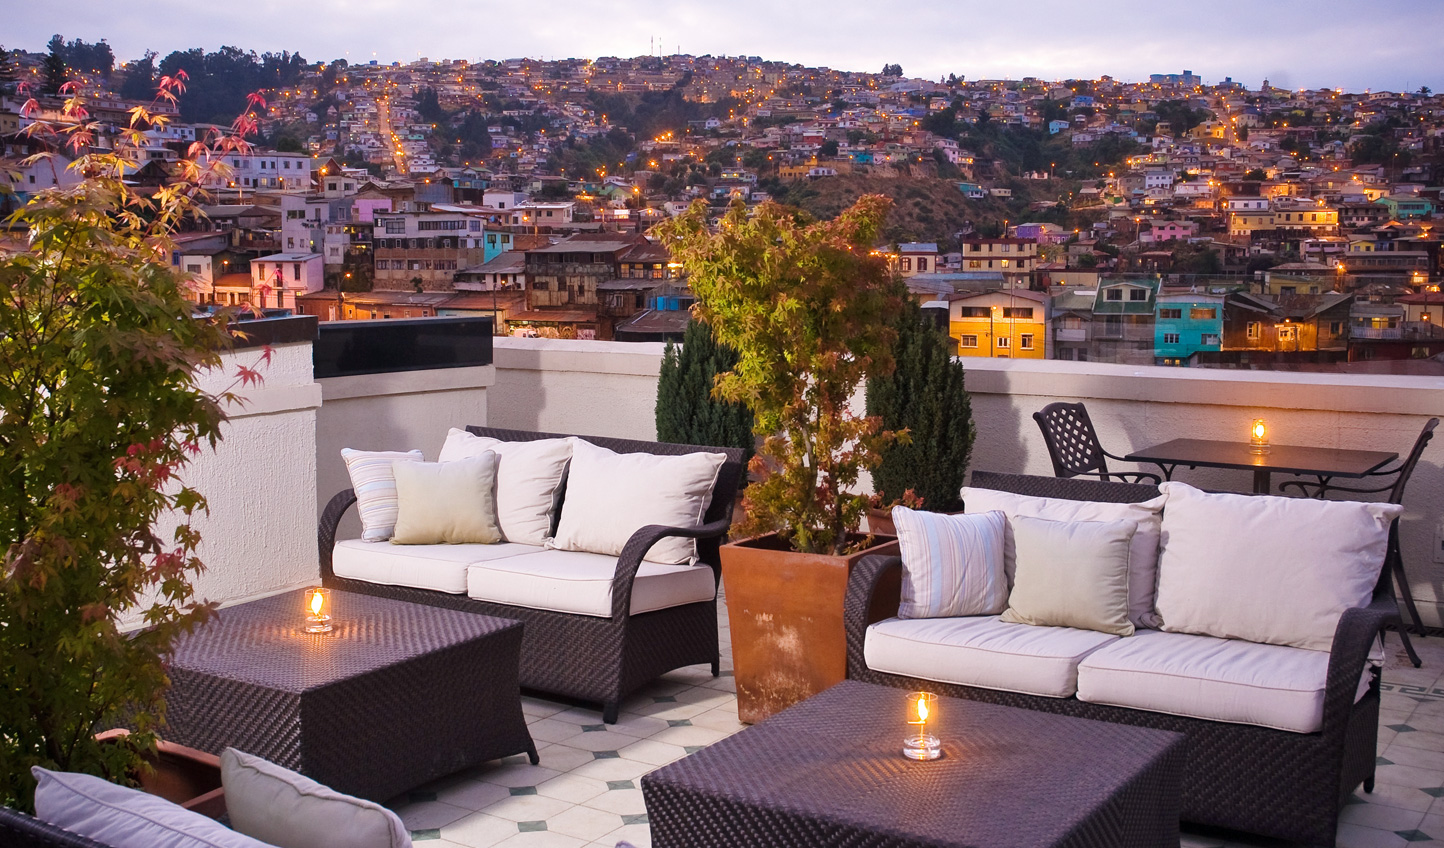 Soak up the rooftop sights from Casa Higueras